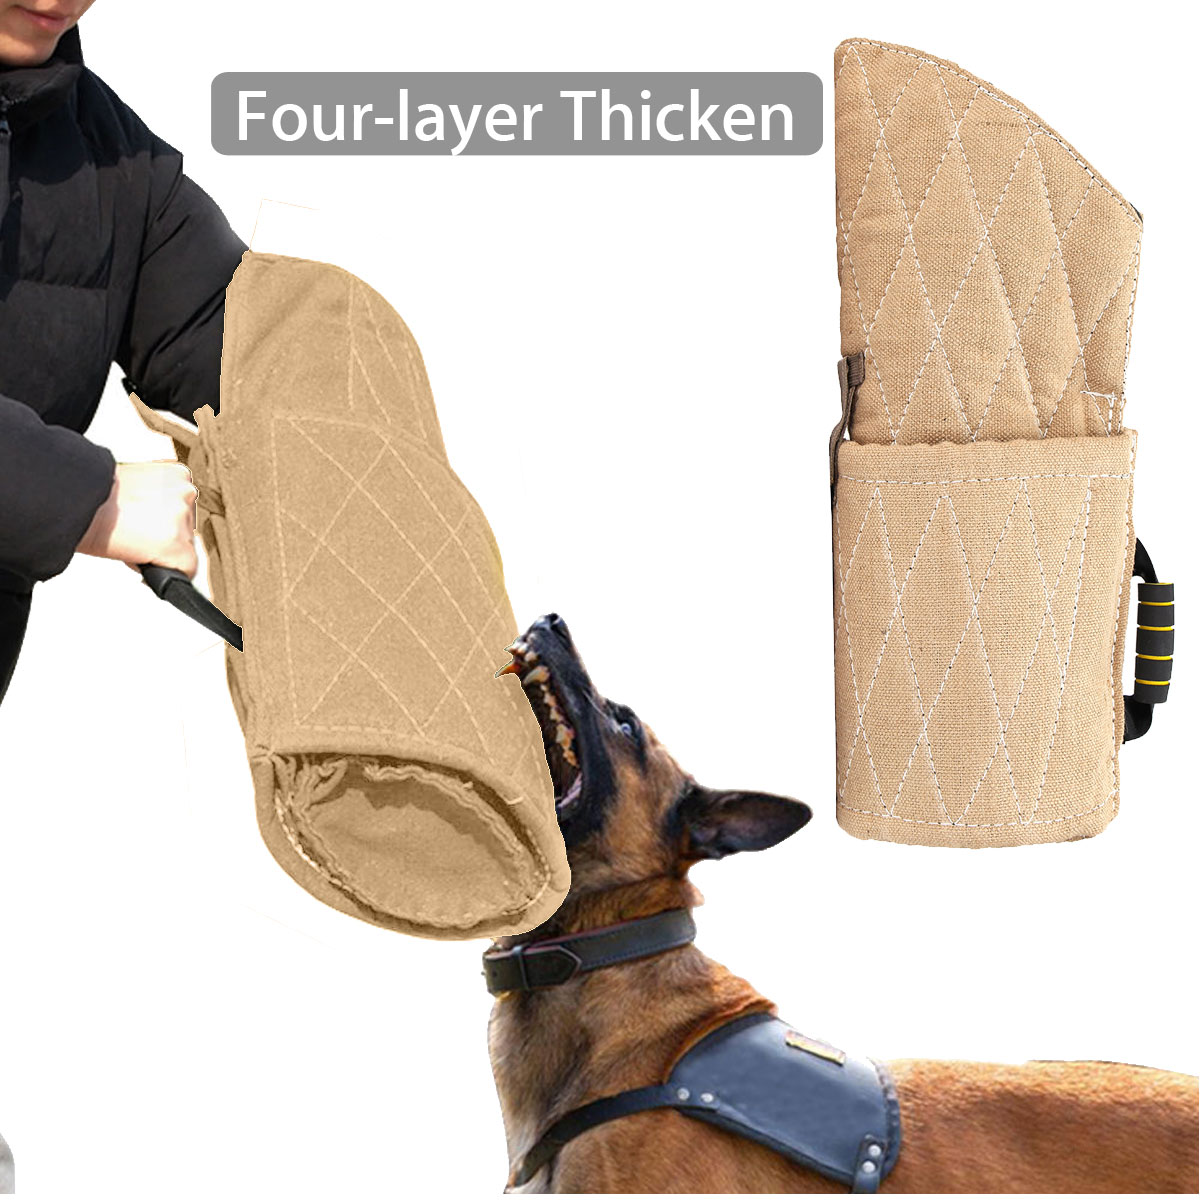 NEW Fibre Dog Training Bite Sleeve Grip Sleeve Tug Arm Protection For German Shepherd Young Pet